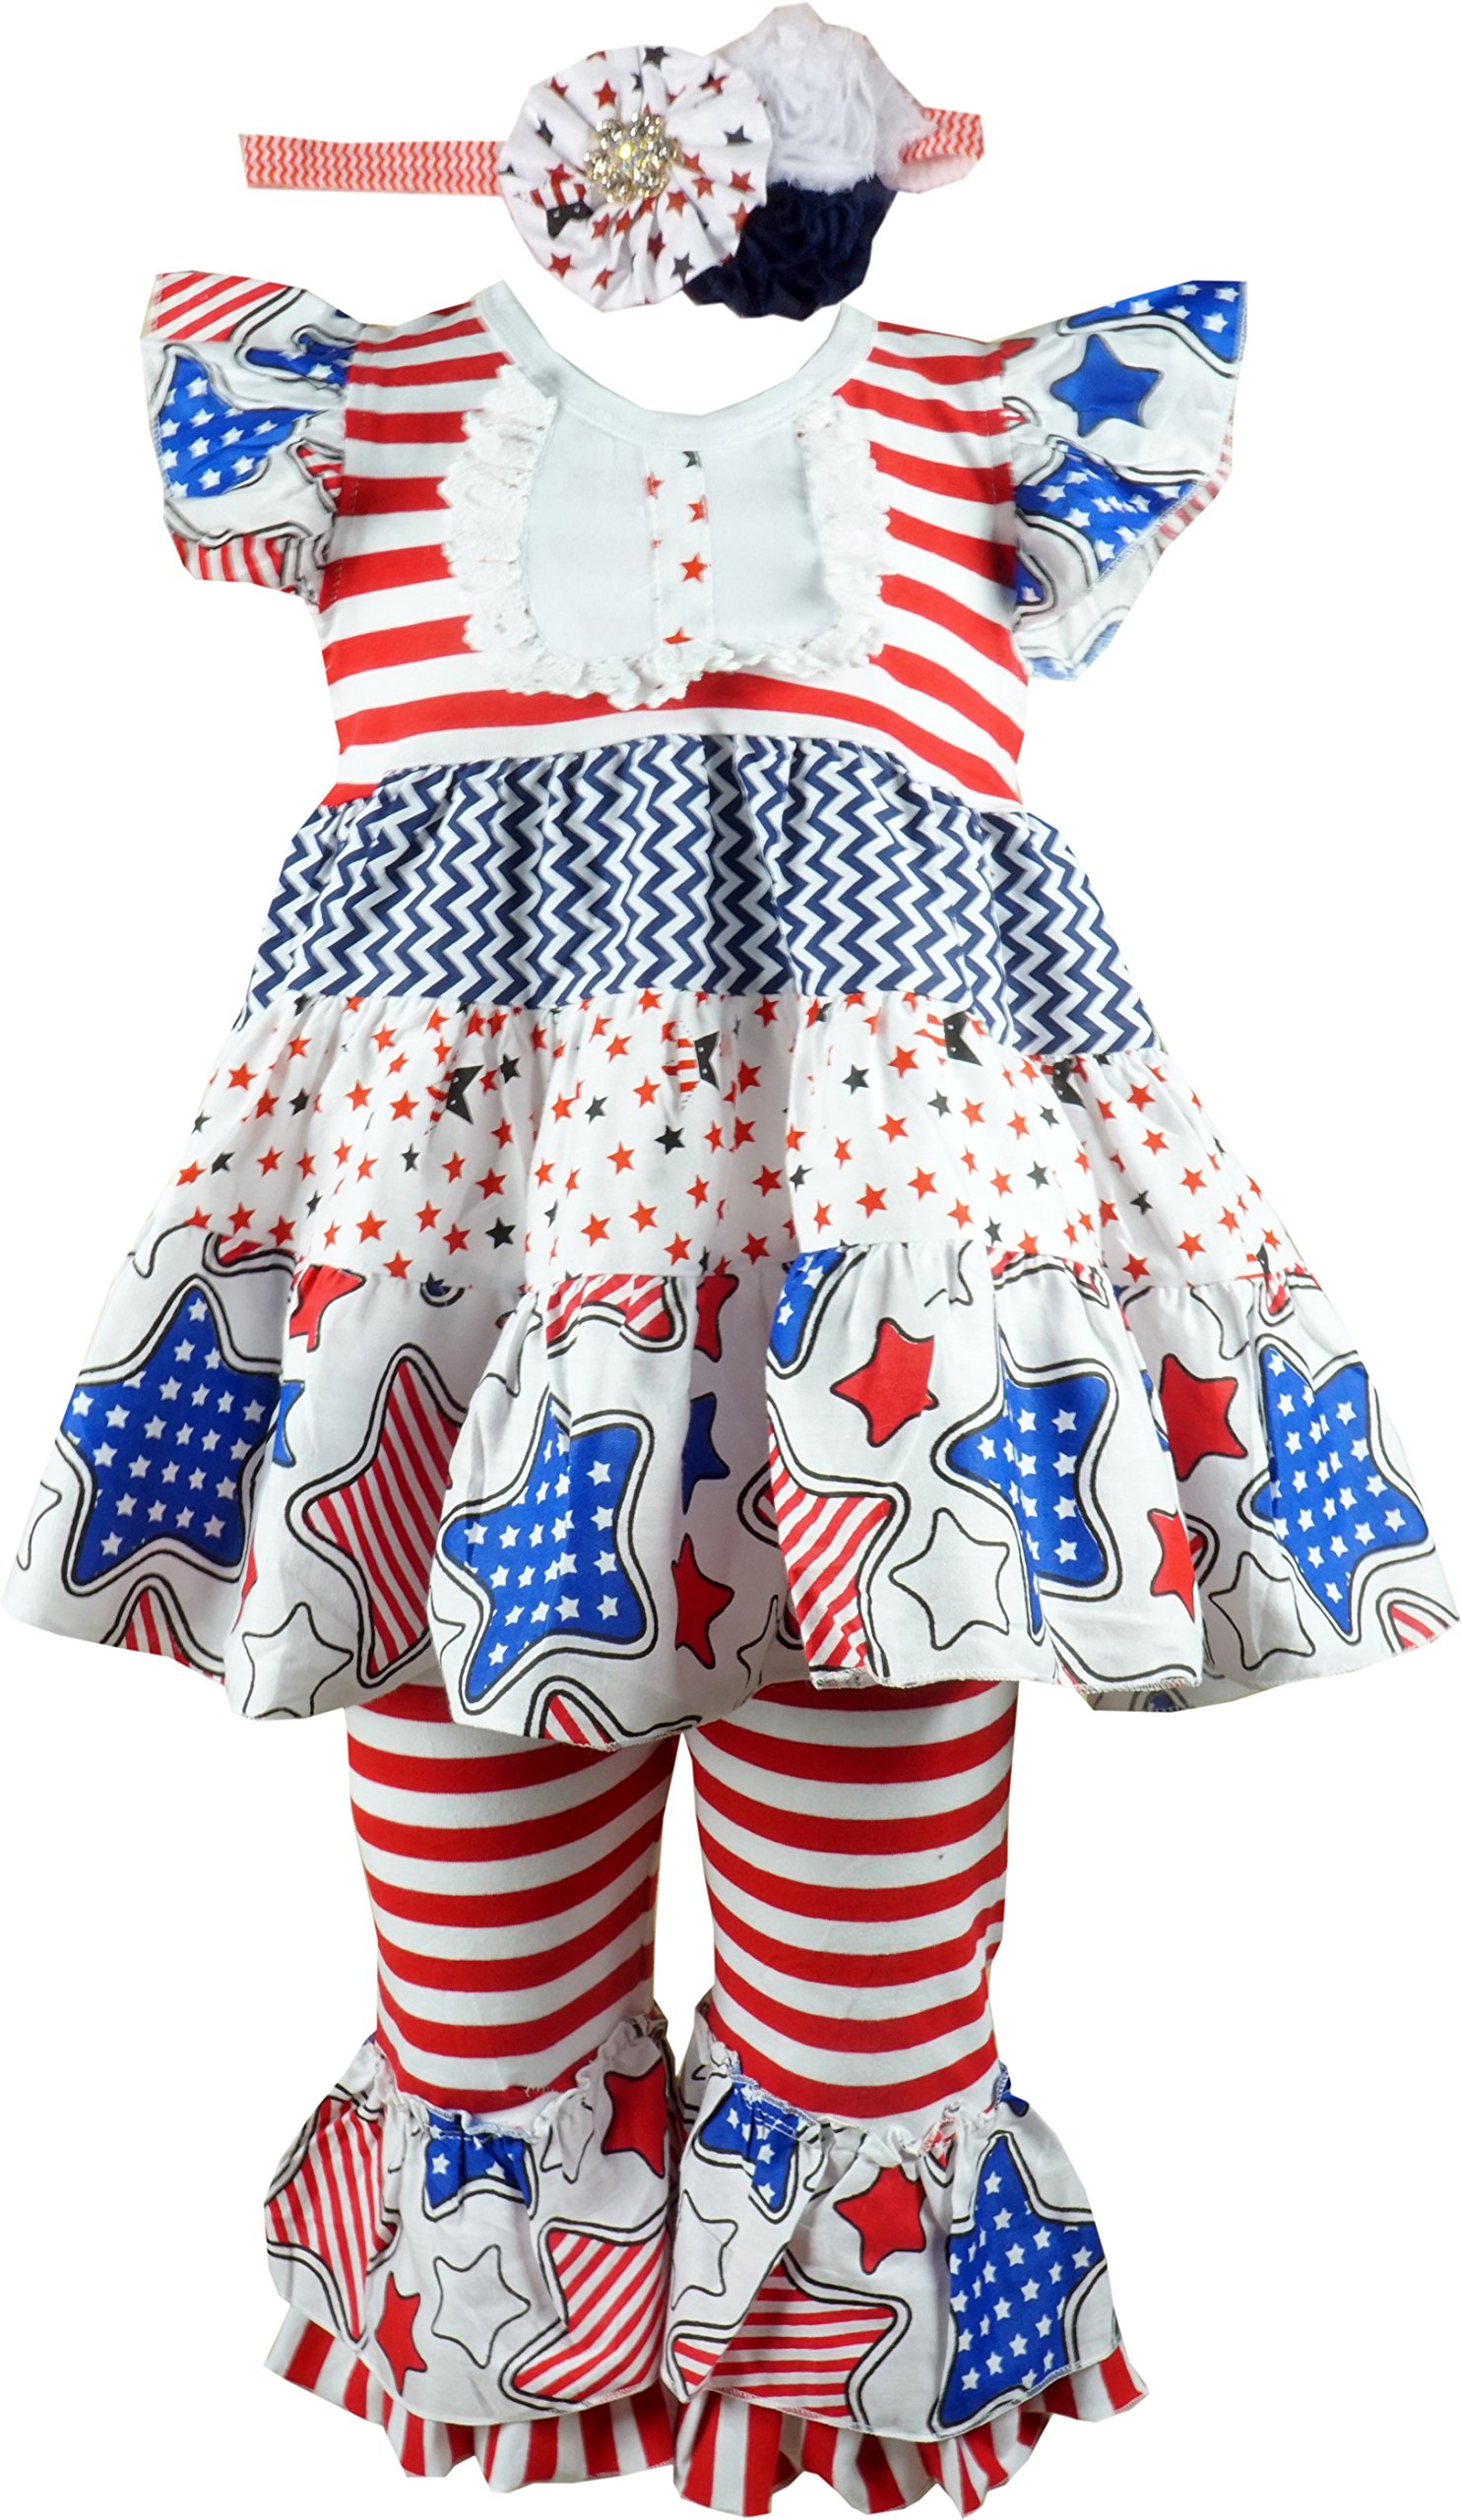 Baby Toddler Little Girls Americana Patriotic Stars Clothing Set 6 by Angeline